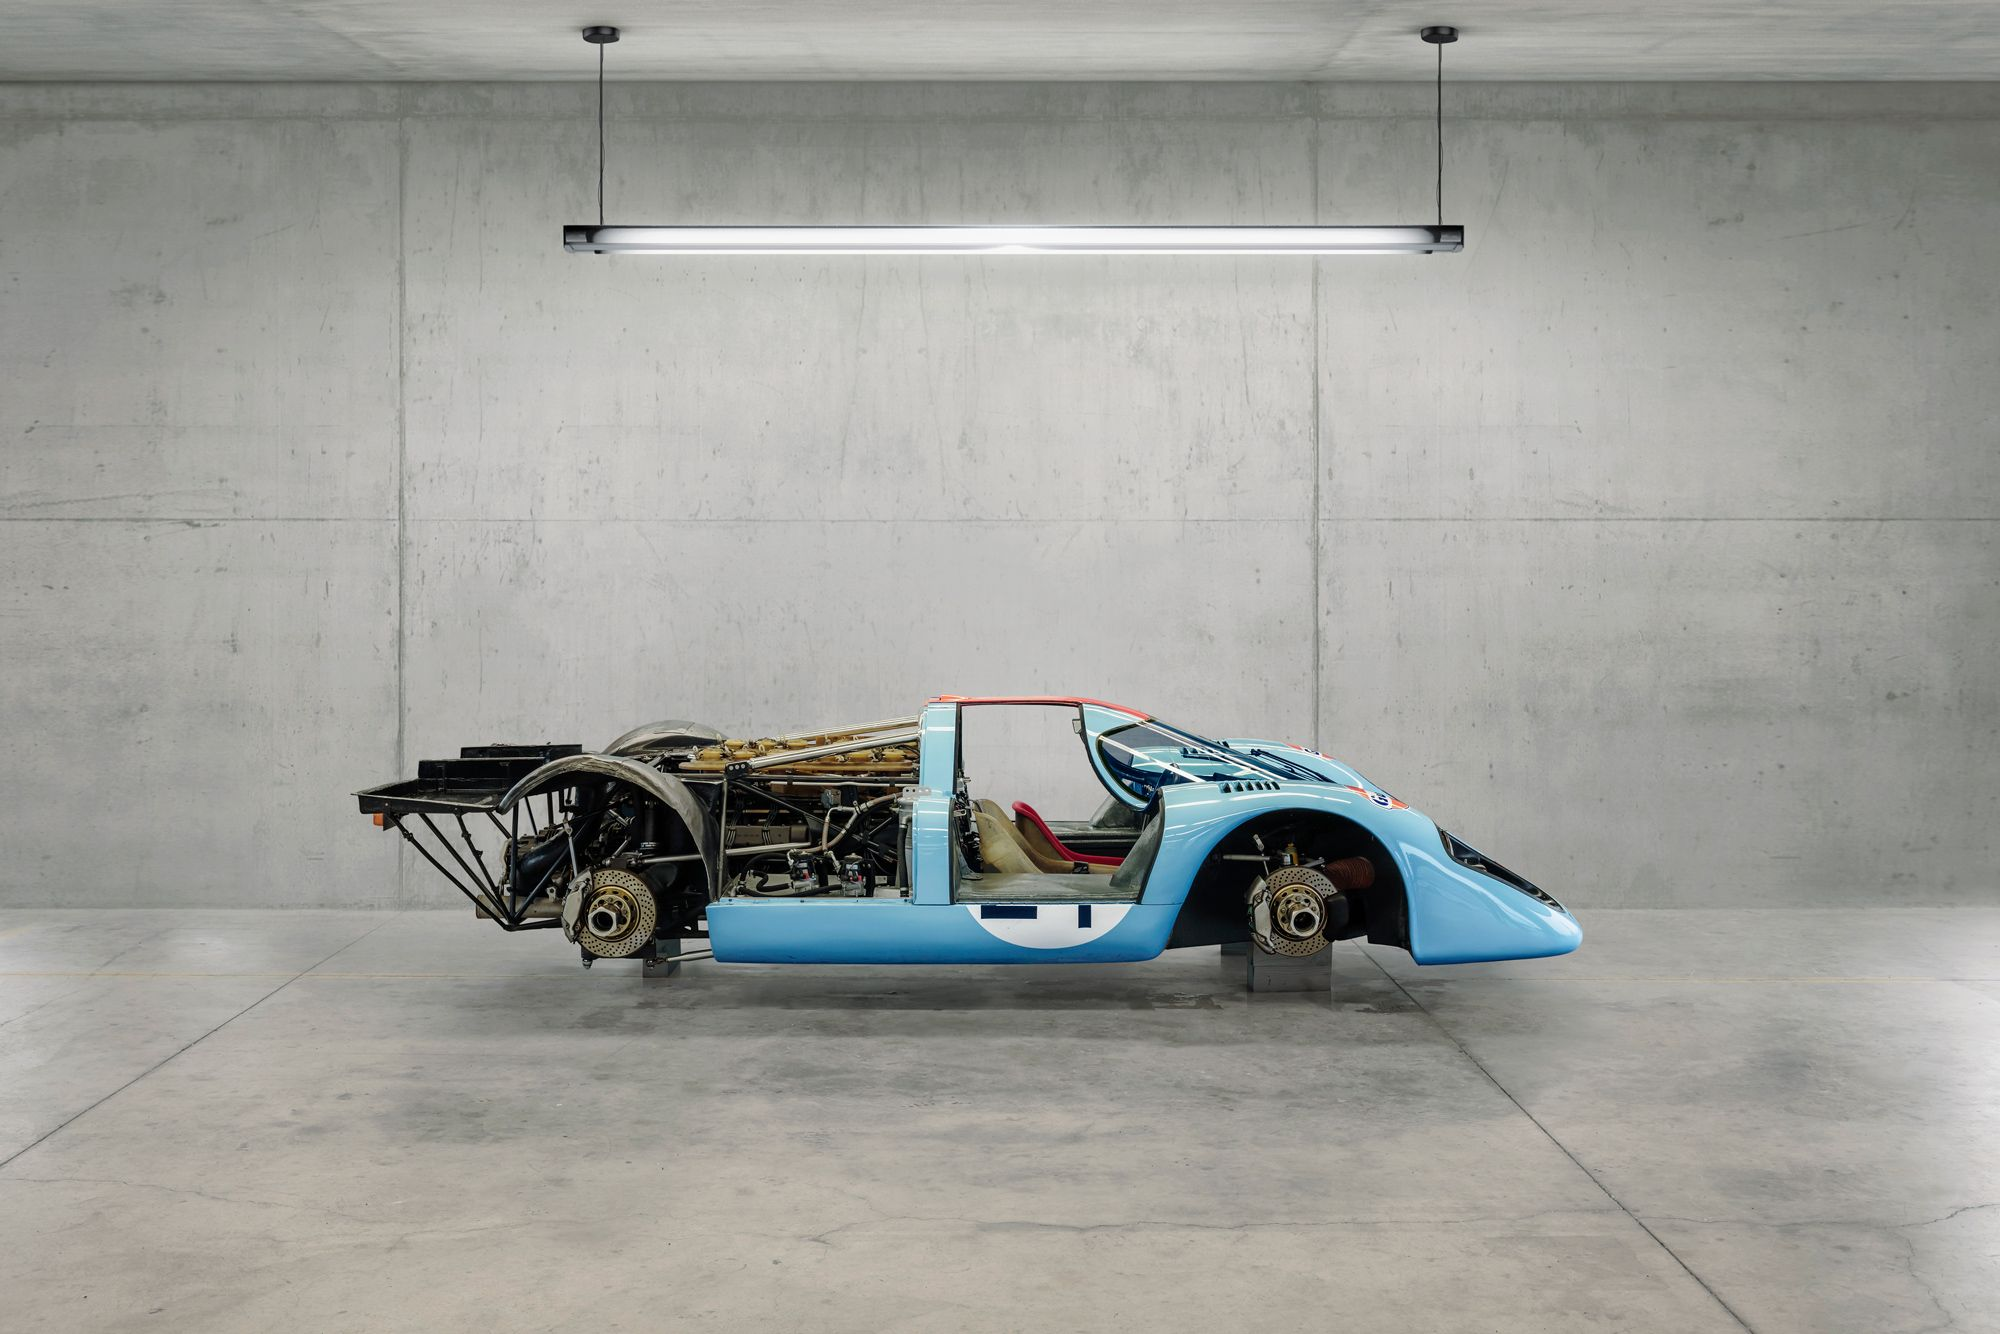 What to Do With the Porsche 917?